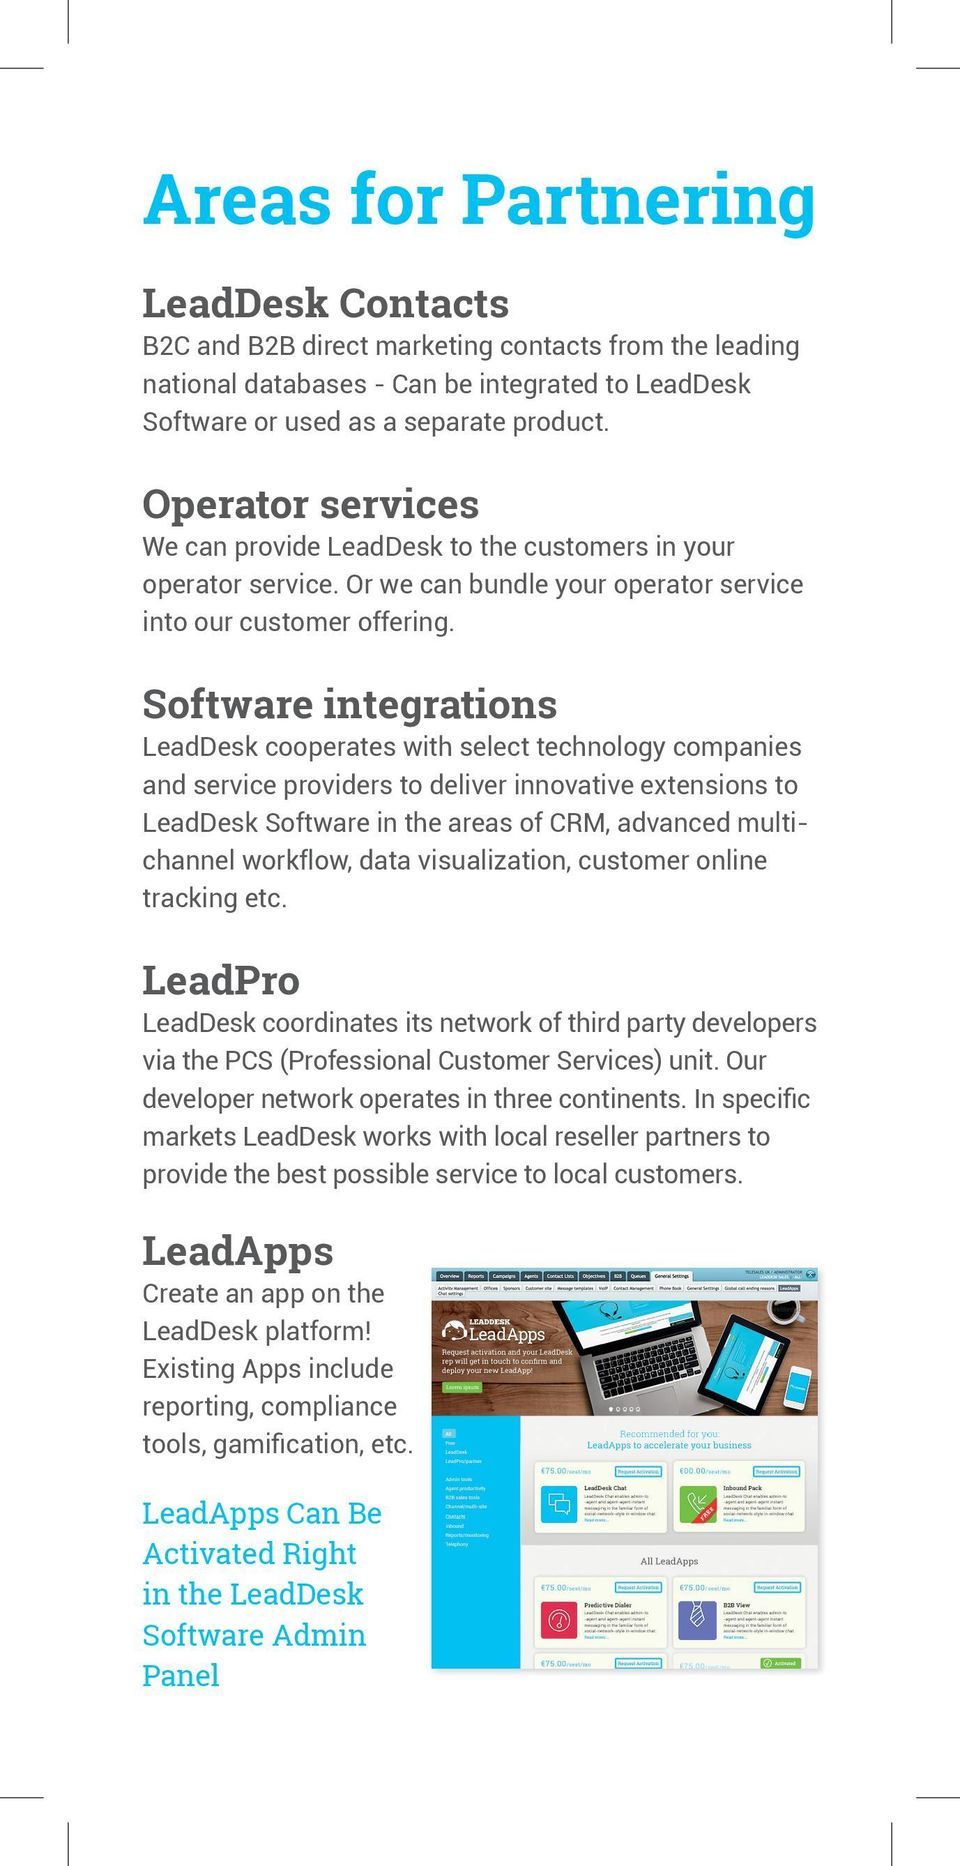 Software integrations LeadDesk cooperates with select technology companies and service providers to deliver innovative extensions to LeadDesk Software in the areas of CRM, advanced multichannel